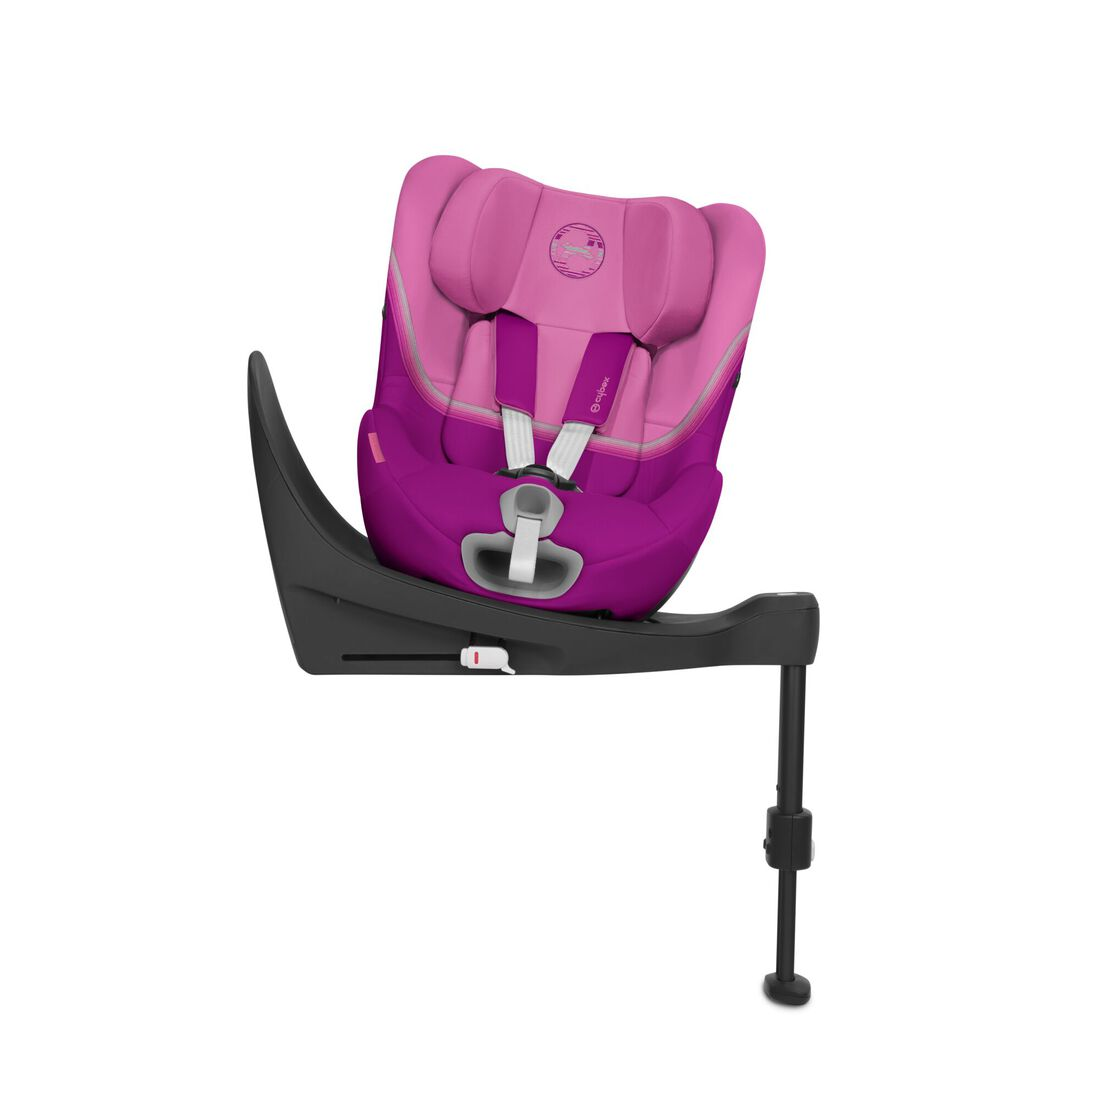 CYBEX Sirona SX2 i-Size - Magnolia Pink in Magnolia Pink large image number 3